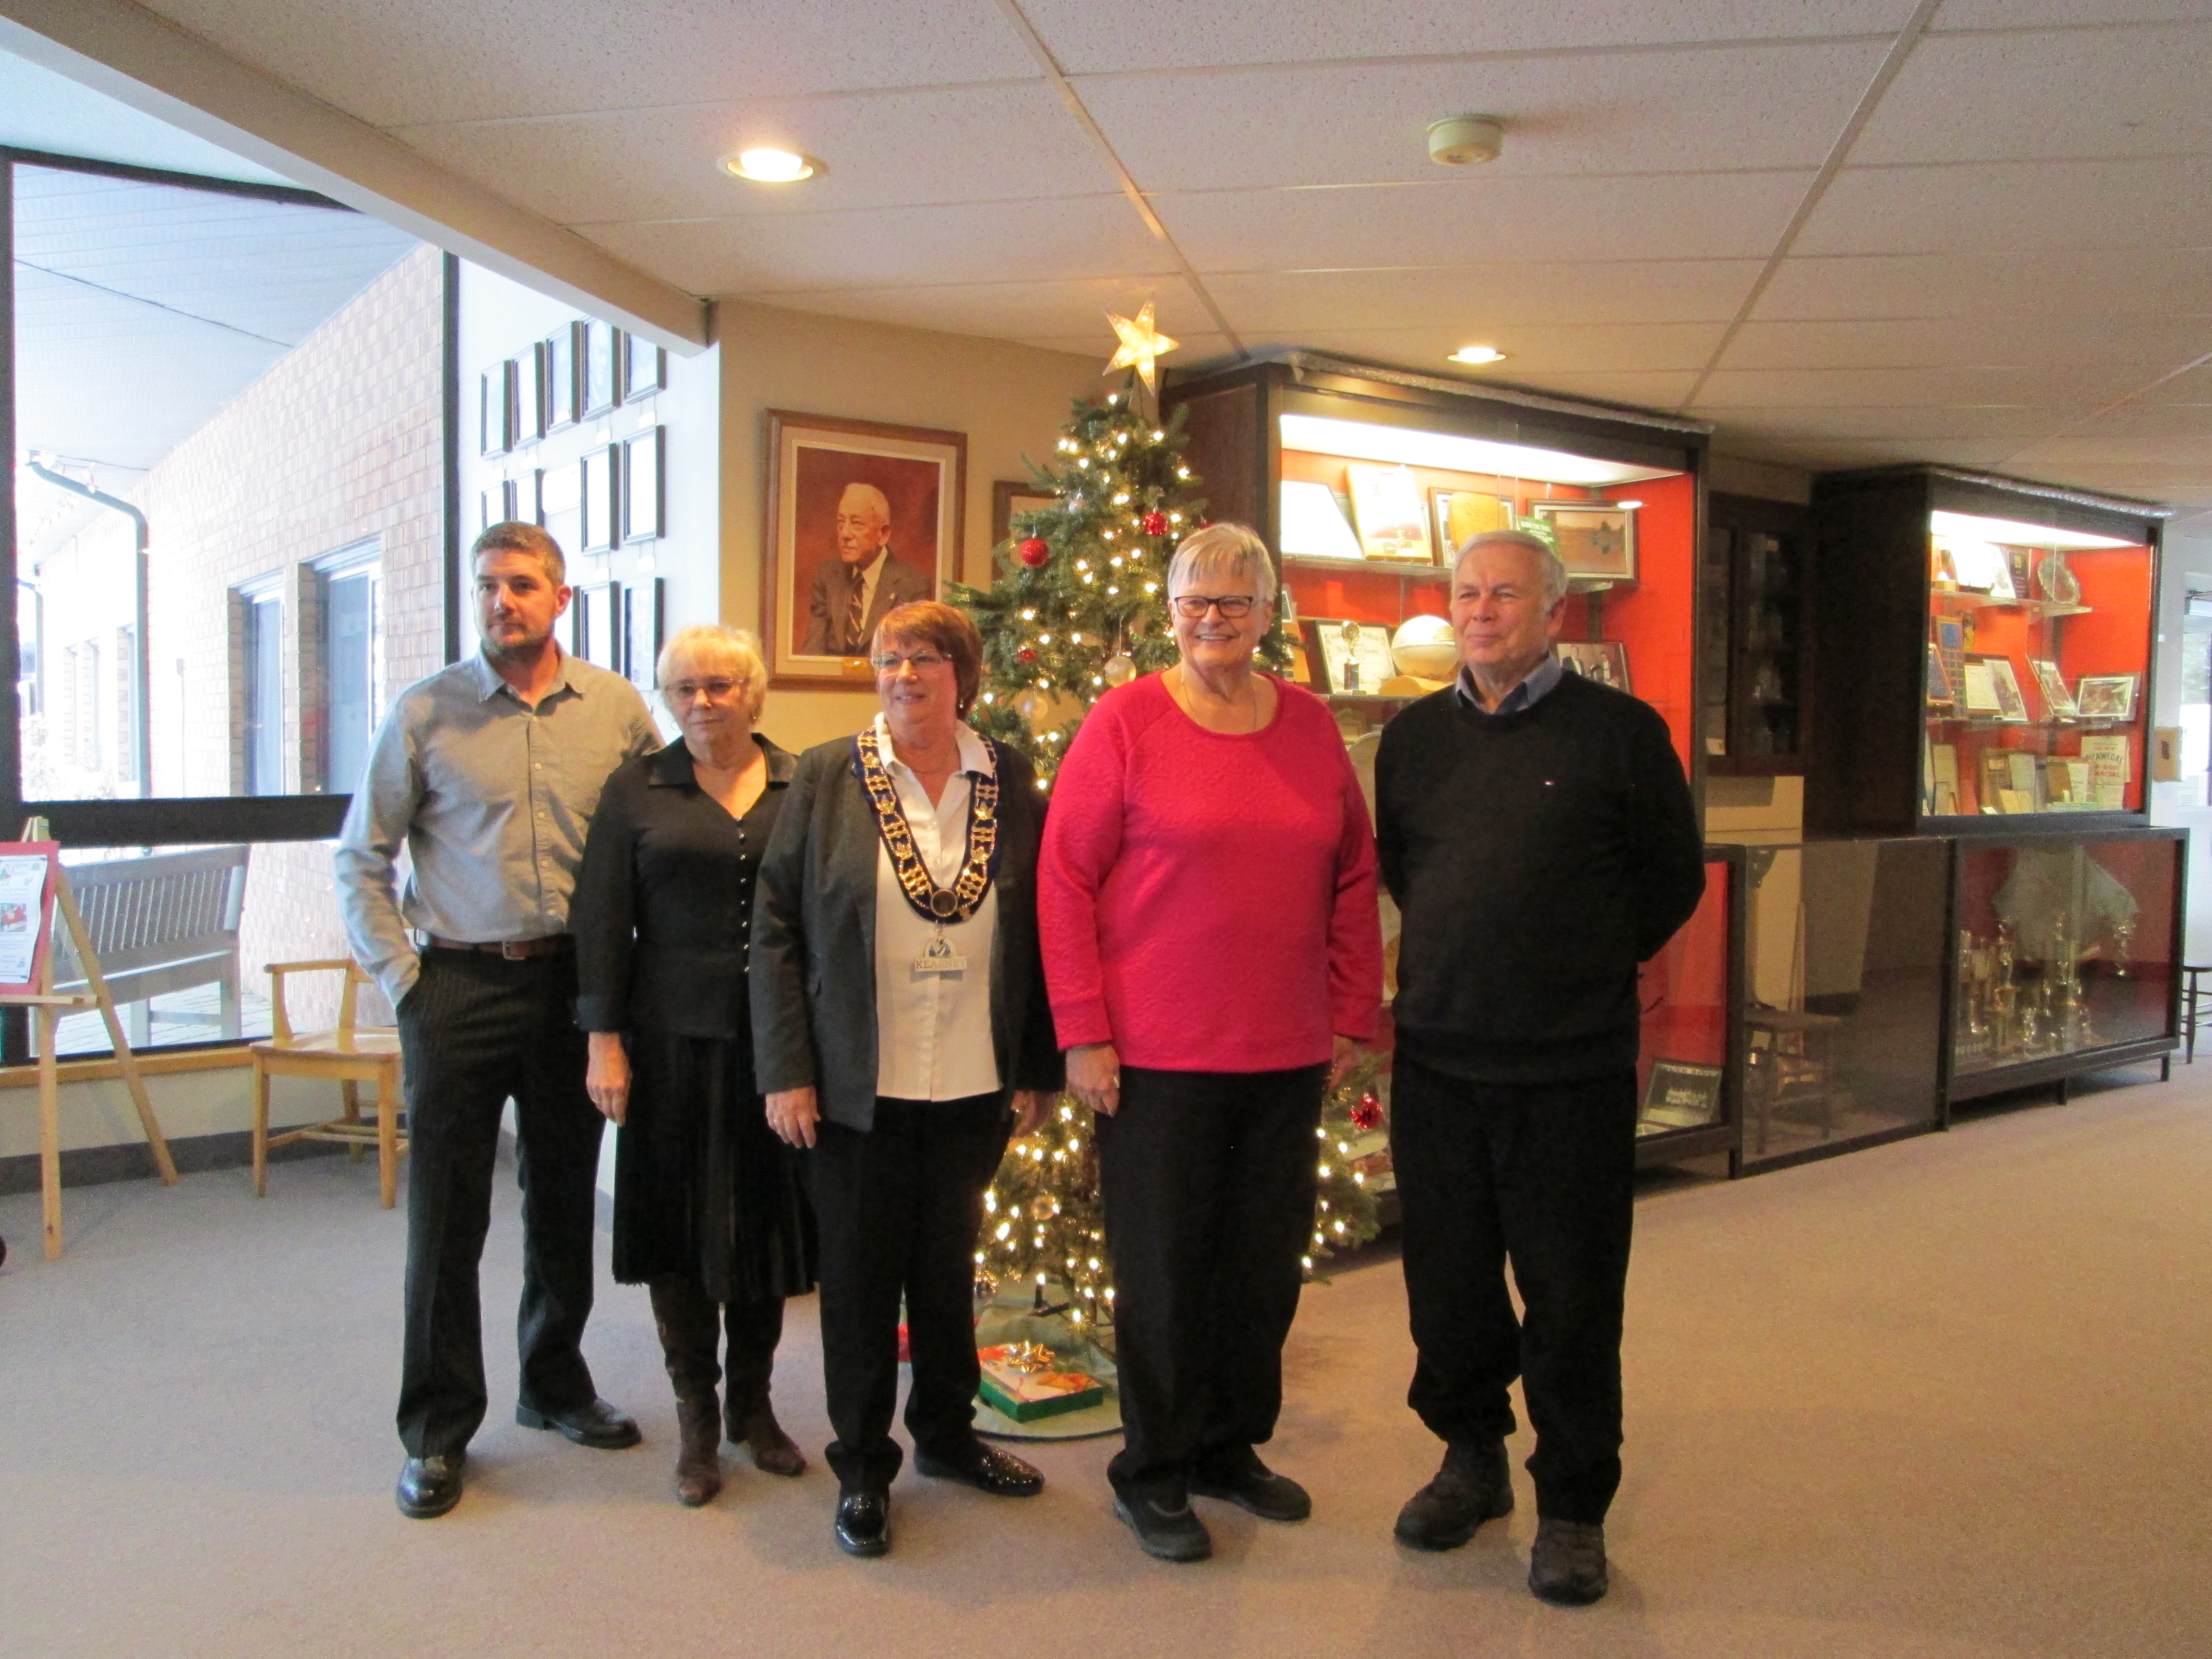 From left to right: Councillor Michael Rickward, Councillor Cheryl Philip, Mayor Carol Ballantyne, Councillor Elizabeth Stermsek, Councillor Paul Ziraldo